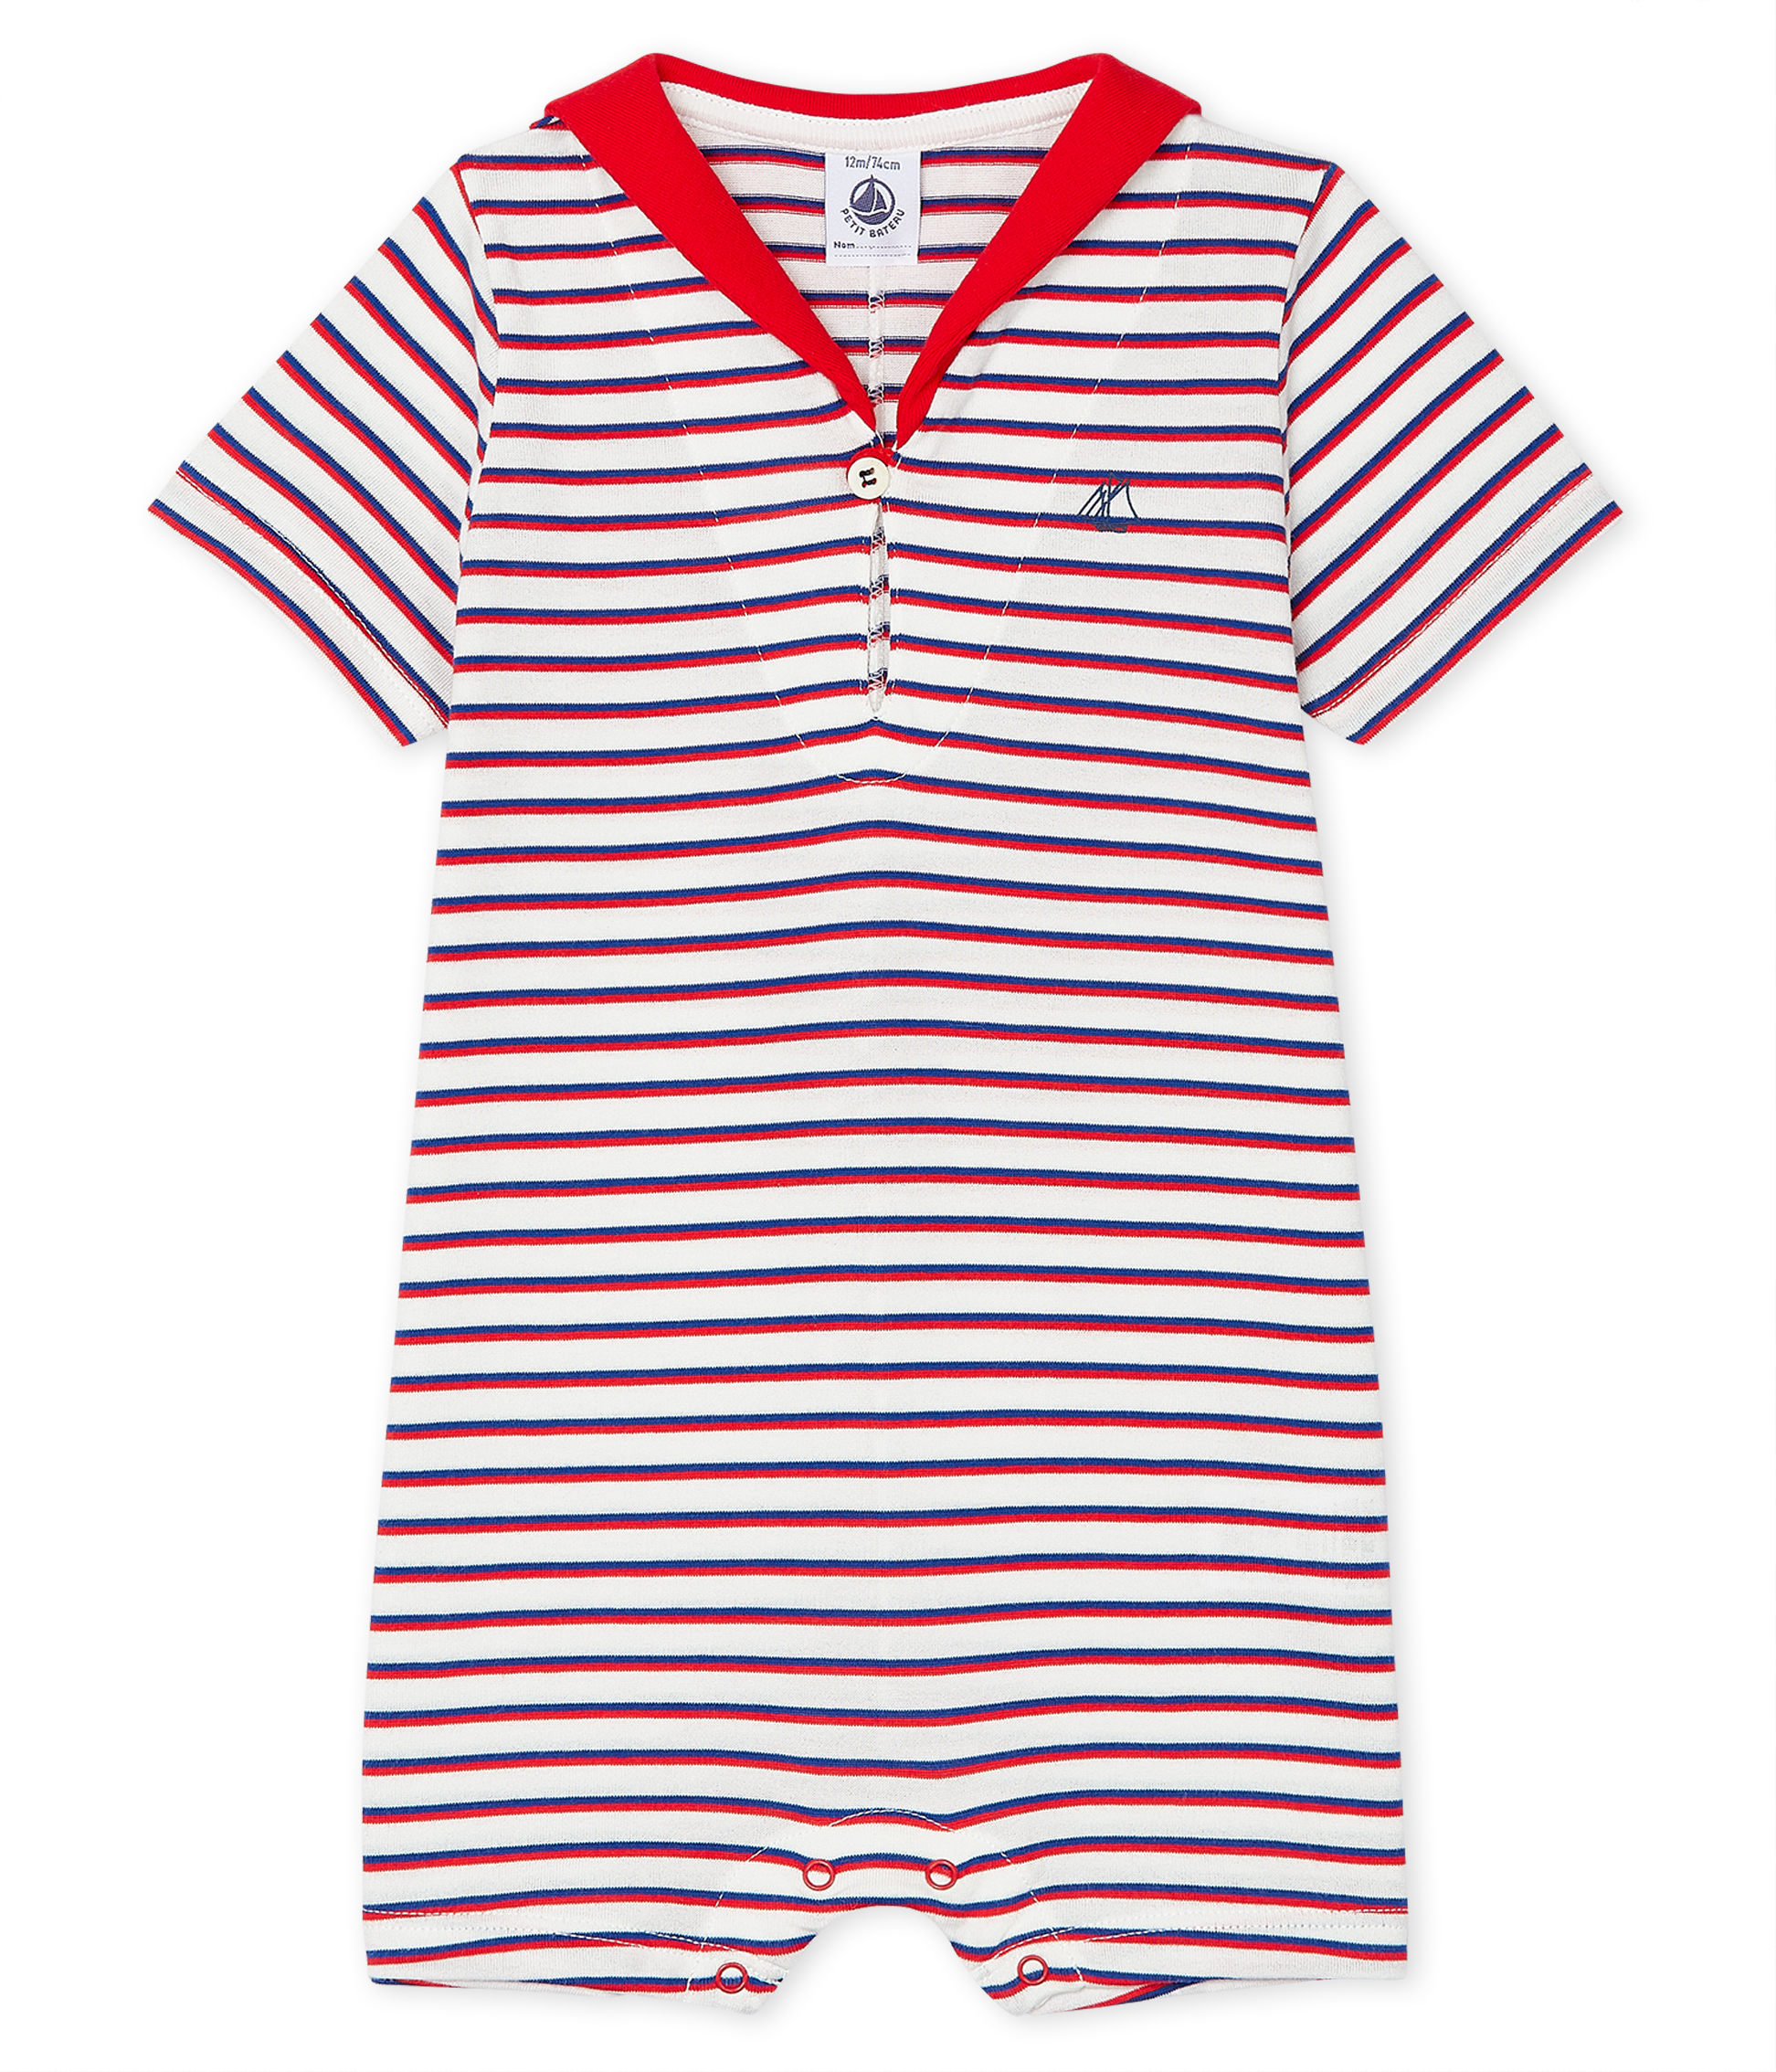 Stripy playsuit for baby boys